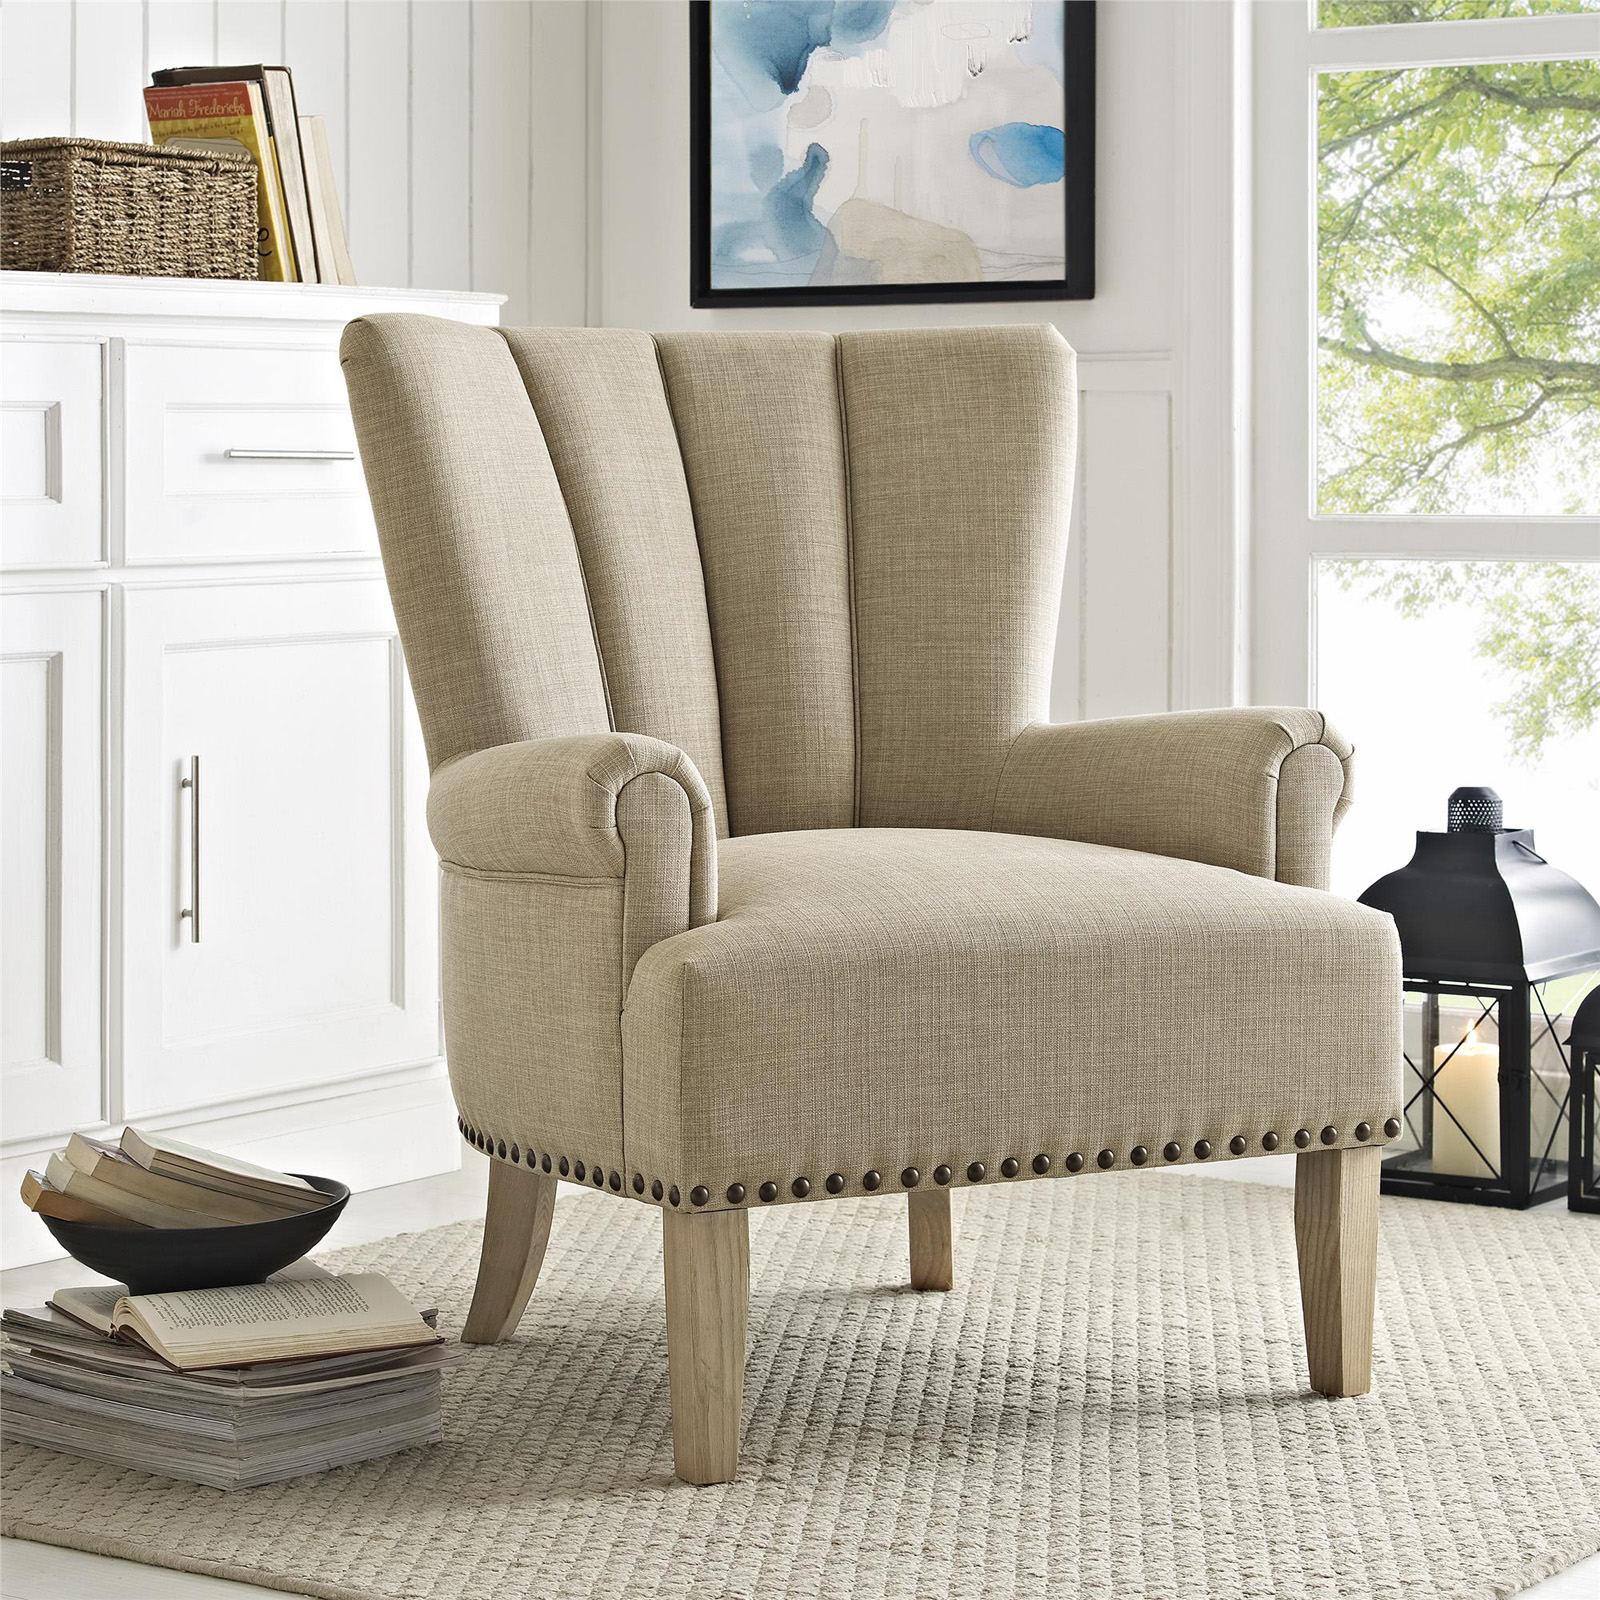 Impressive Beige Accent Chair Set